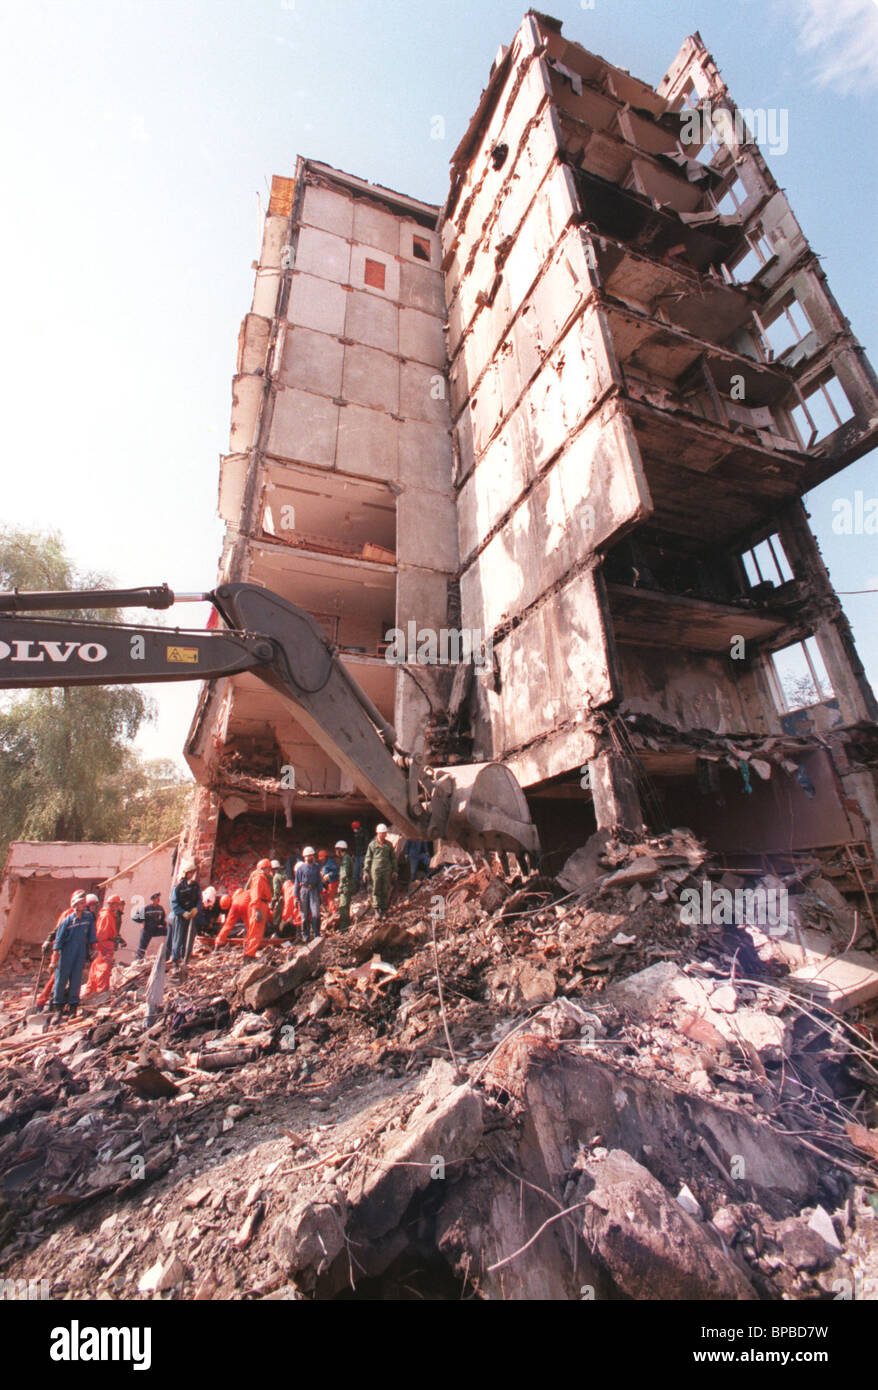 сlean-up operations at the site of an explosion in the apartment block on Moscow's Guryanov Street - Stock Image